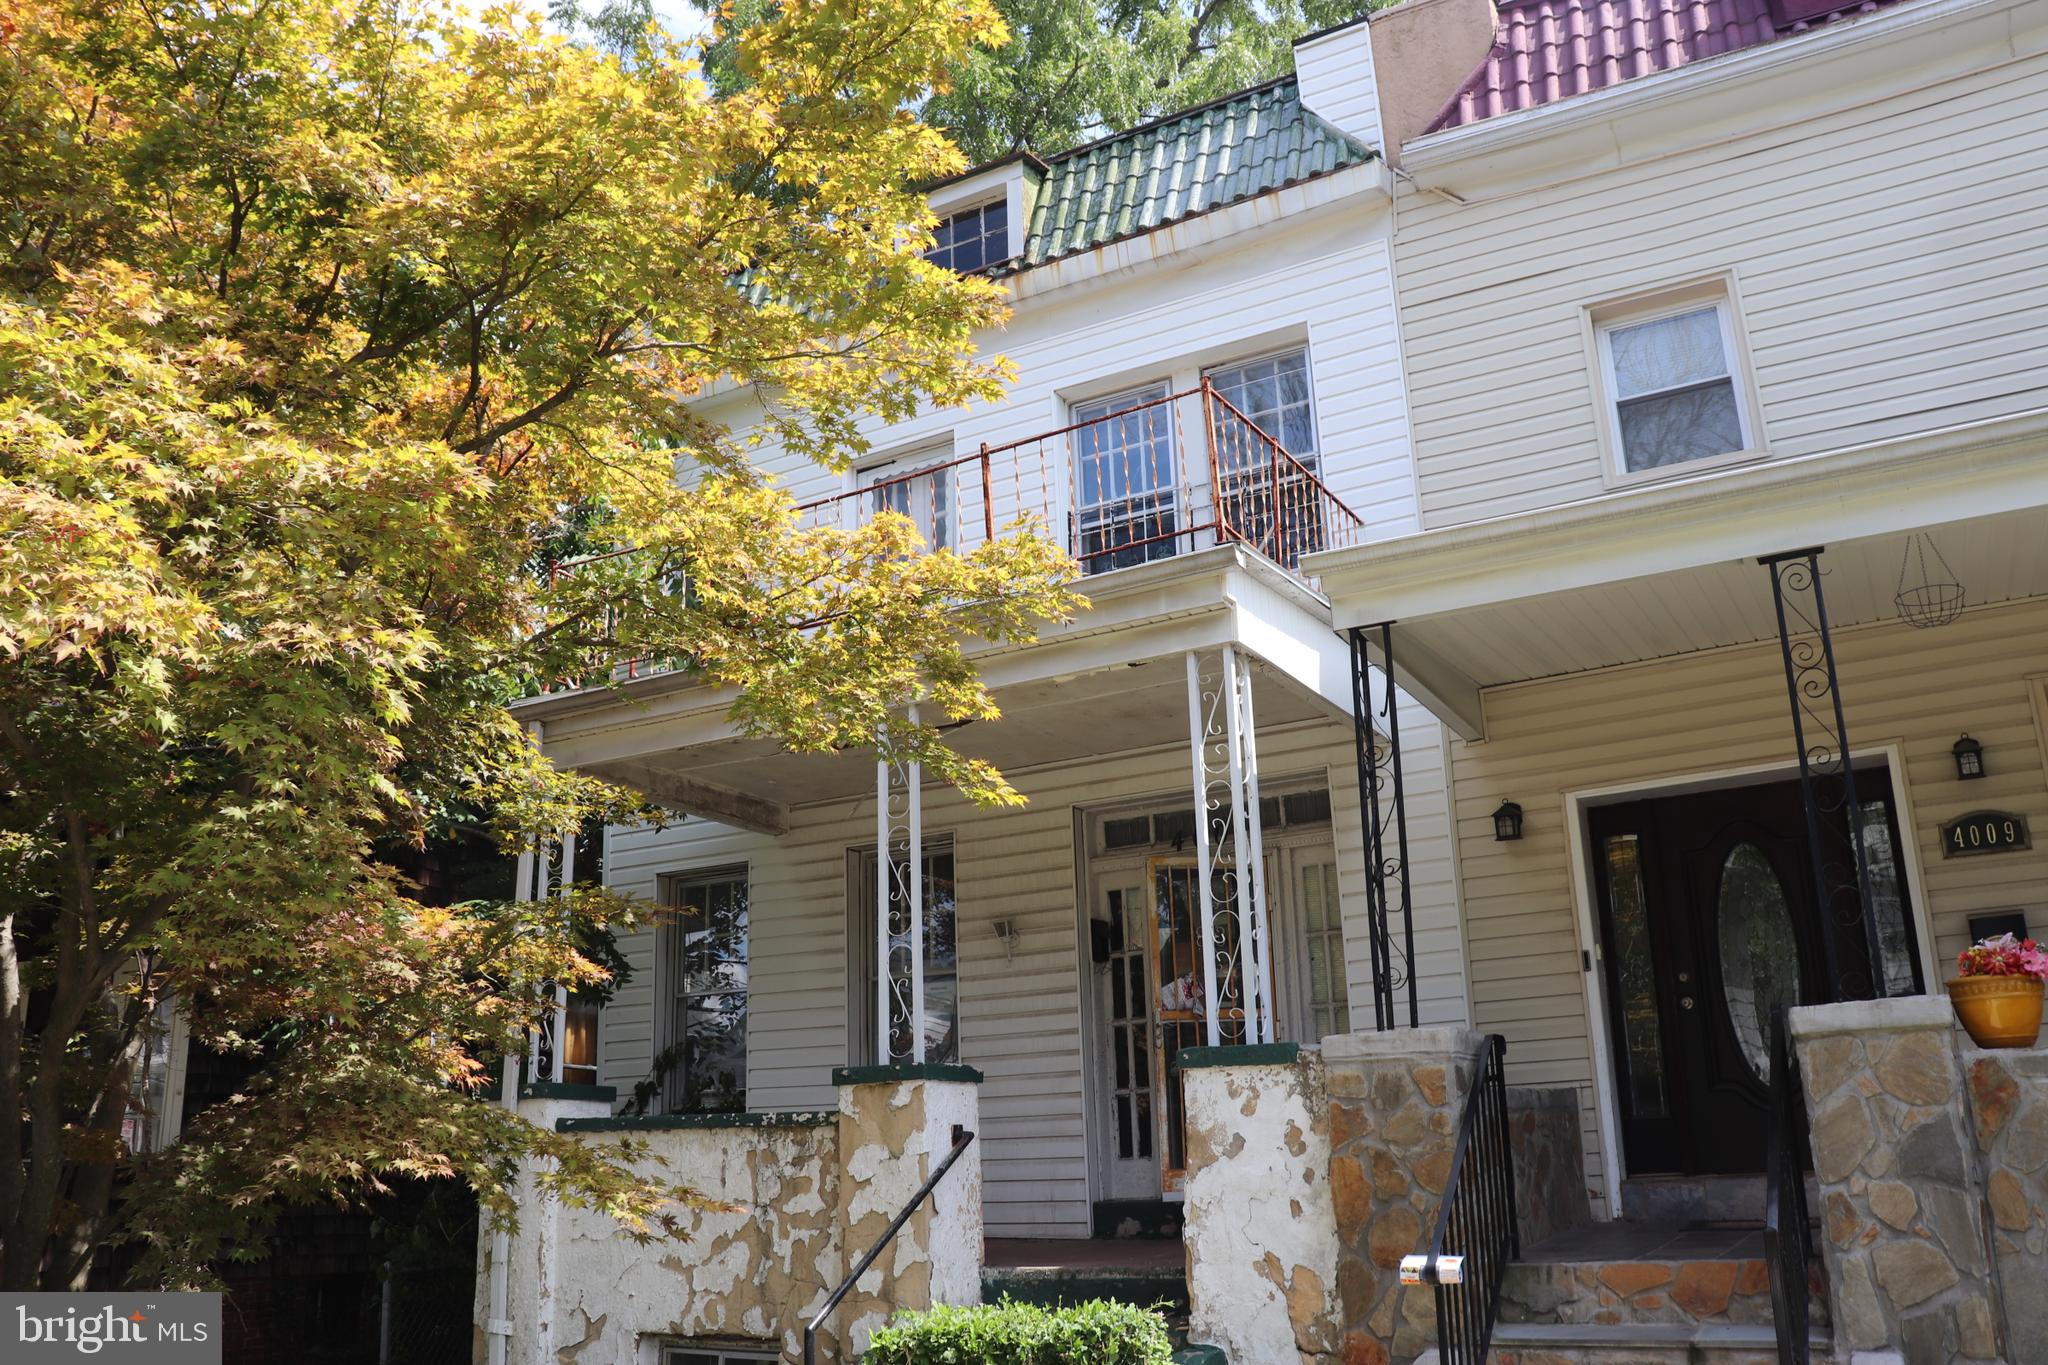 4007 Norfolk Ave, Baltimore, MD, 21216